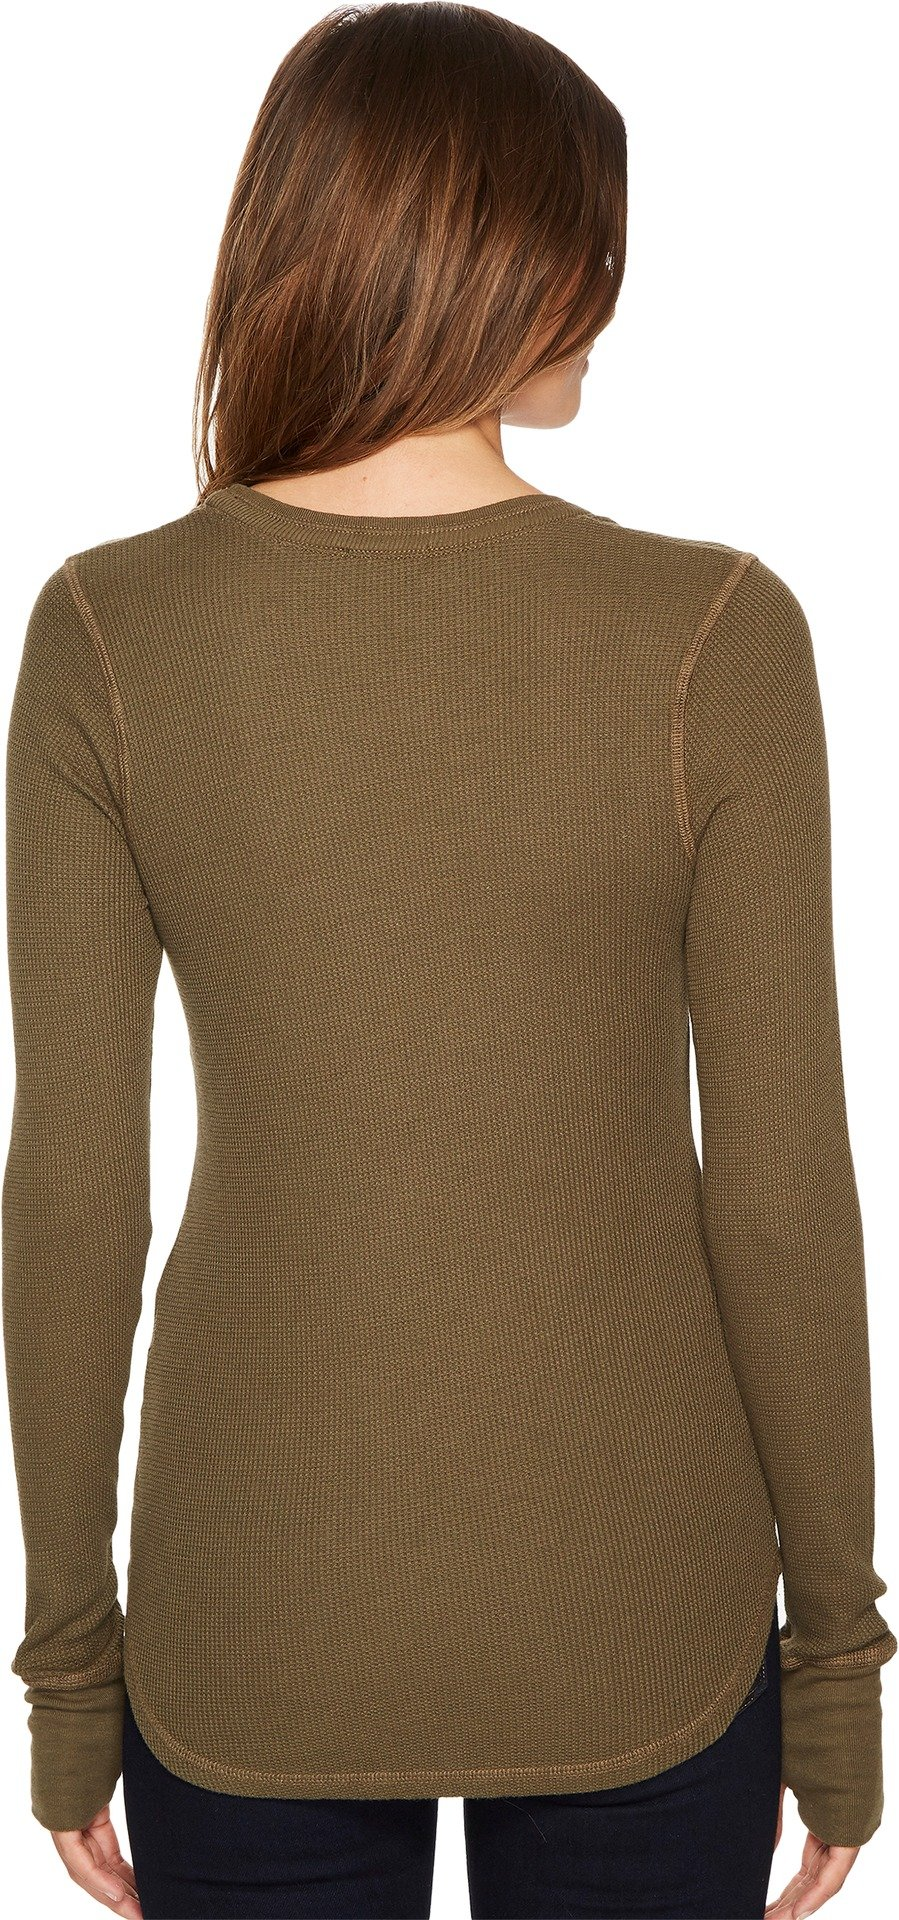 Splendid Women's U-Neck Thermal, Olivine, XS